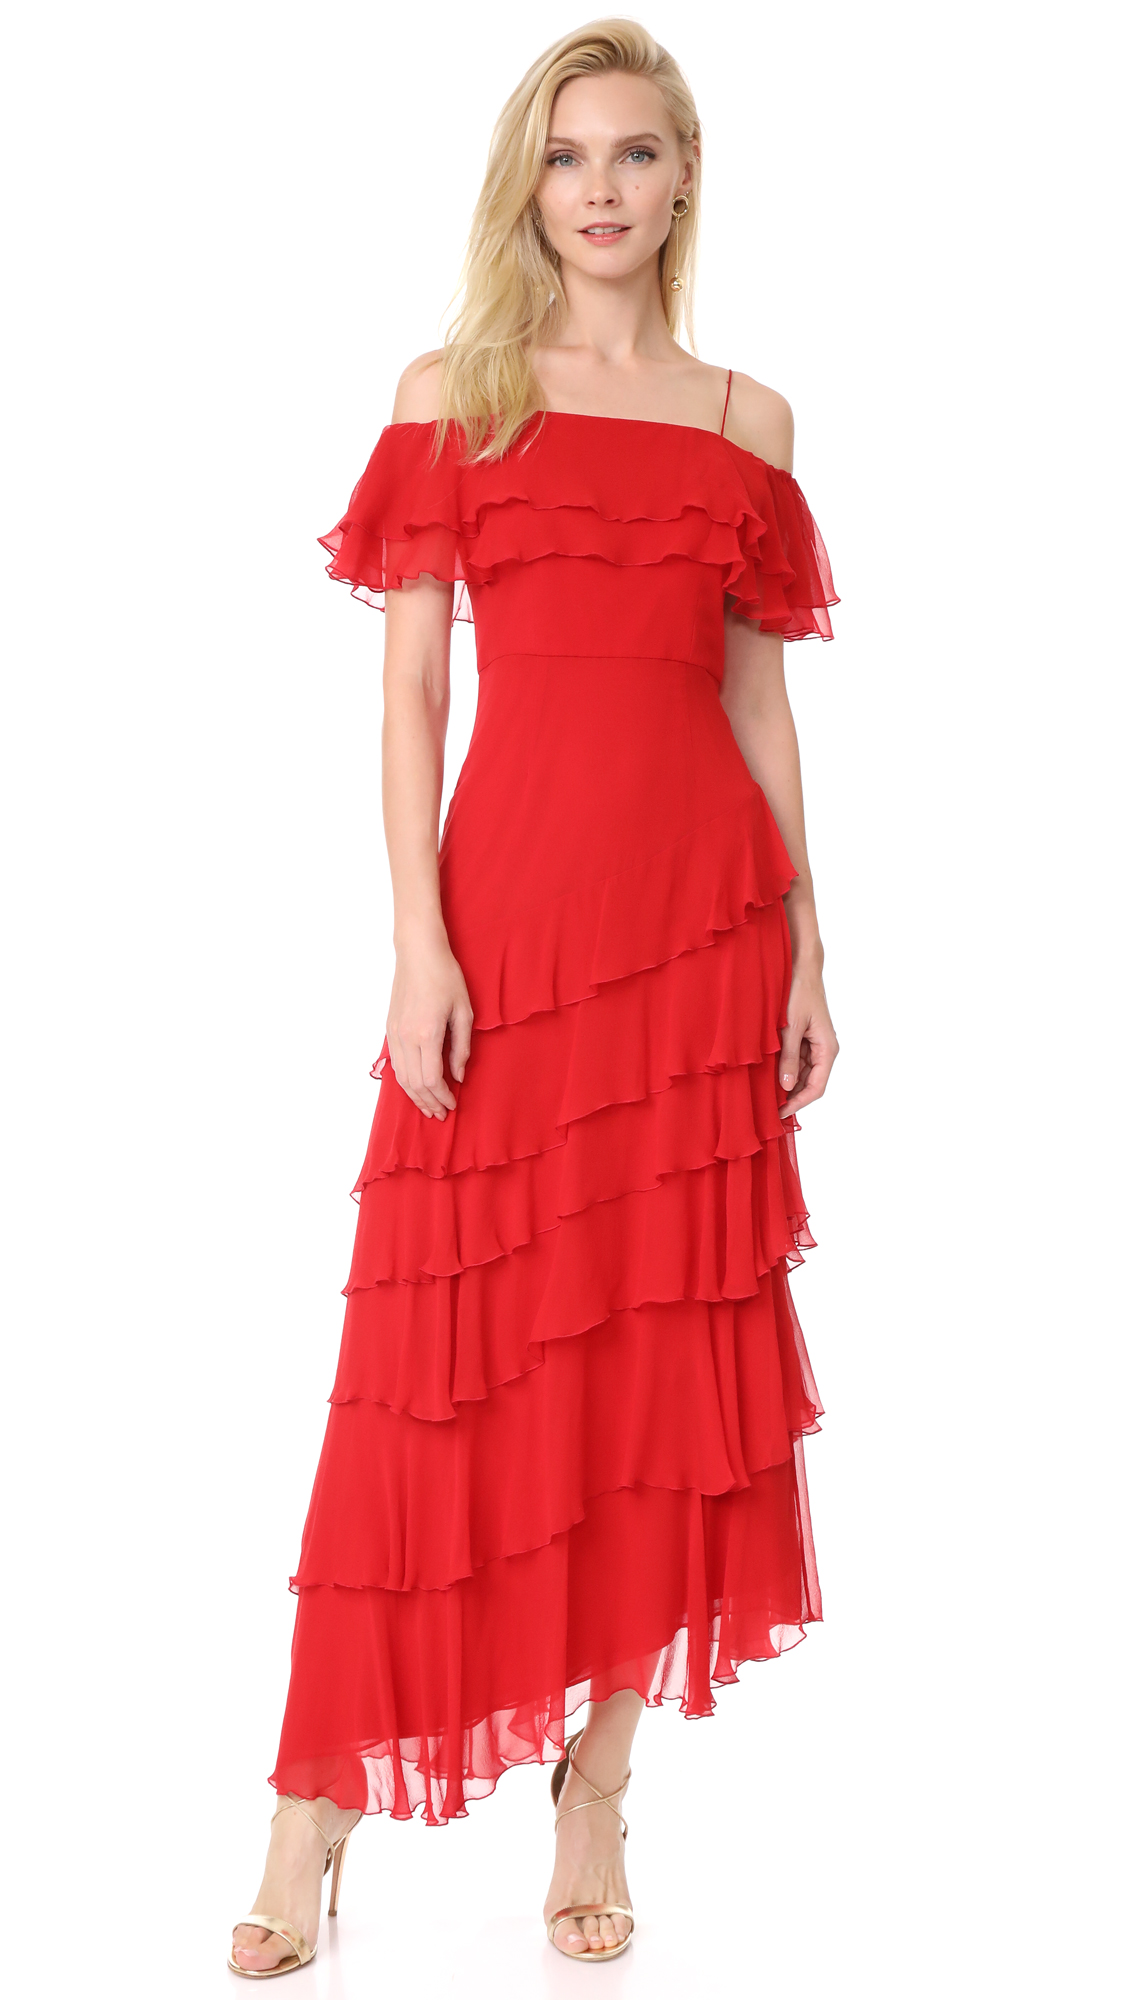 alice + olivia Eloisa Off Shoulder Ruffle Gown - Deep Ruby